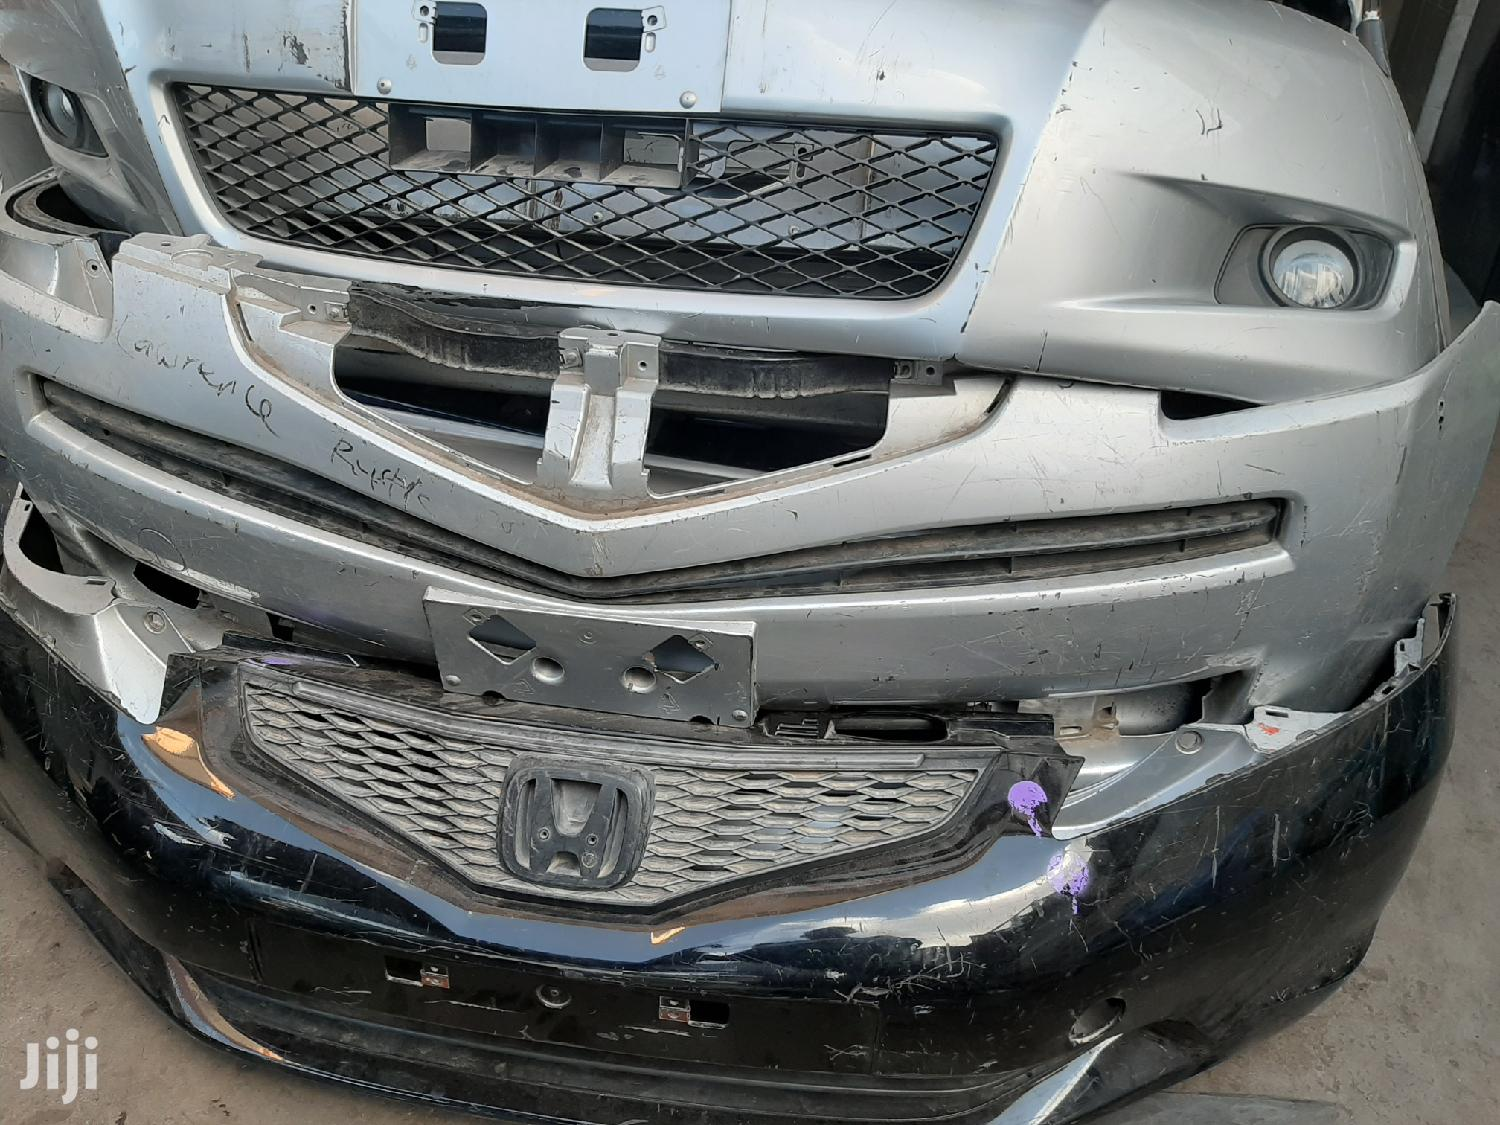 Dent Free Toyota Ractis 2008 Front Bumper Auto Car Spare Body Parts